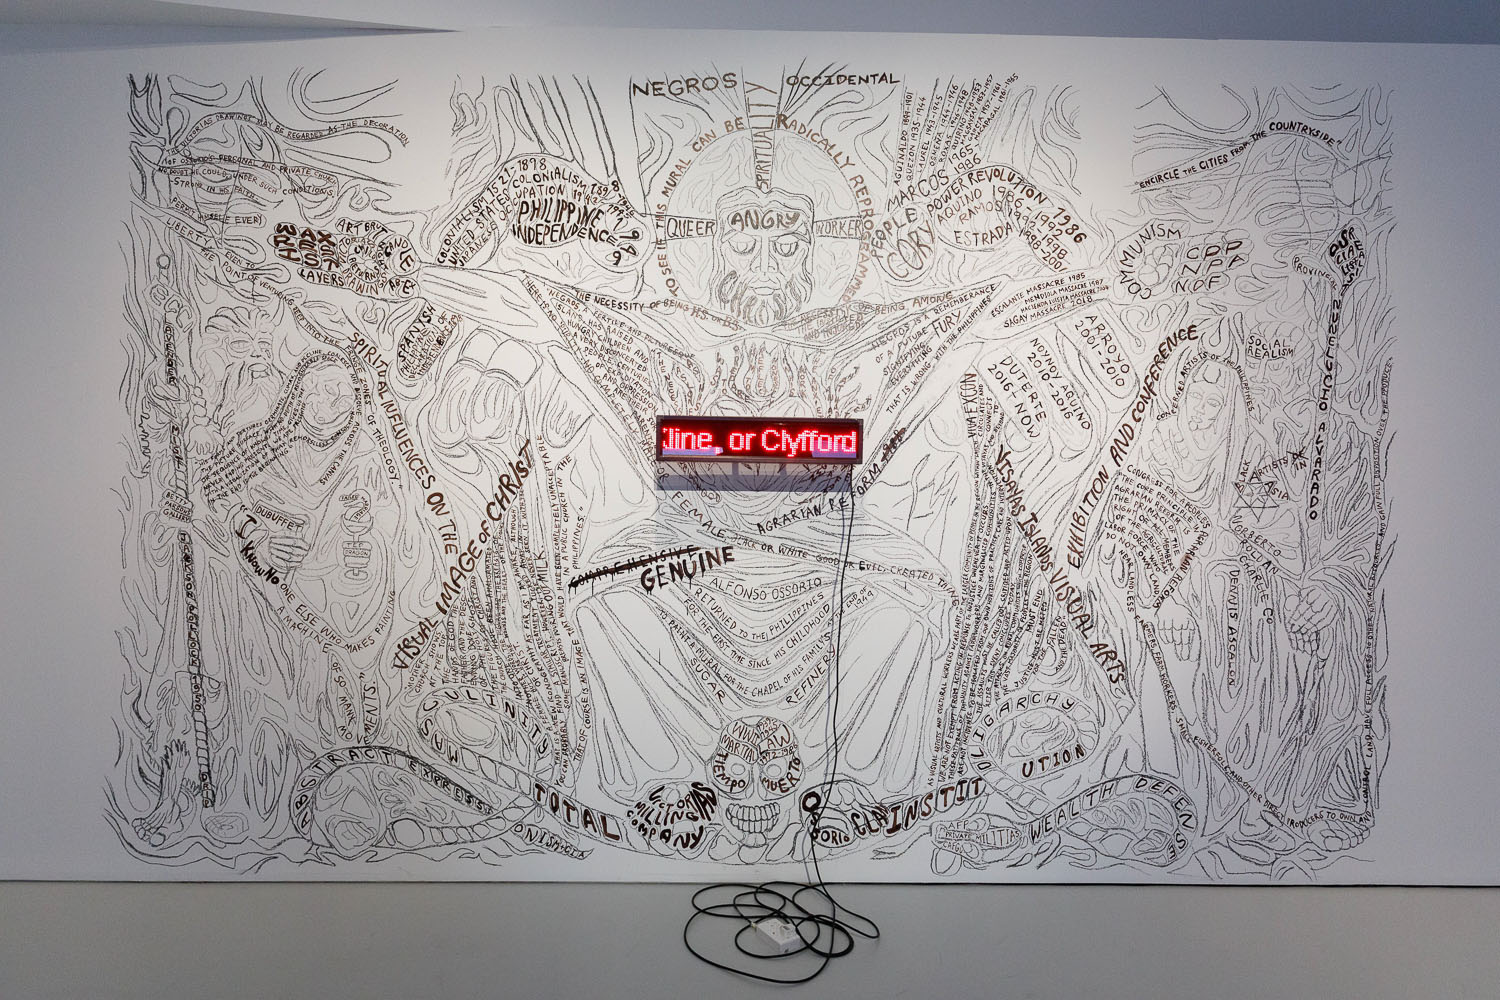 Amy Lien and Enzo Camacho, mural for 'And in the Chapel and in the Temples', installation view. Image courtesy of NTU CCA Singapore.